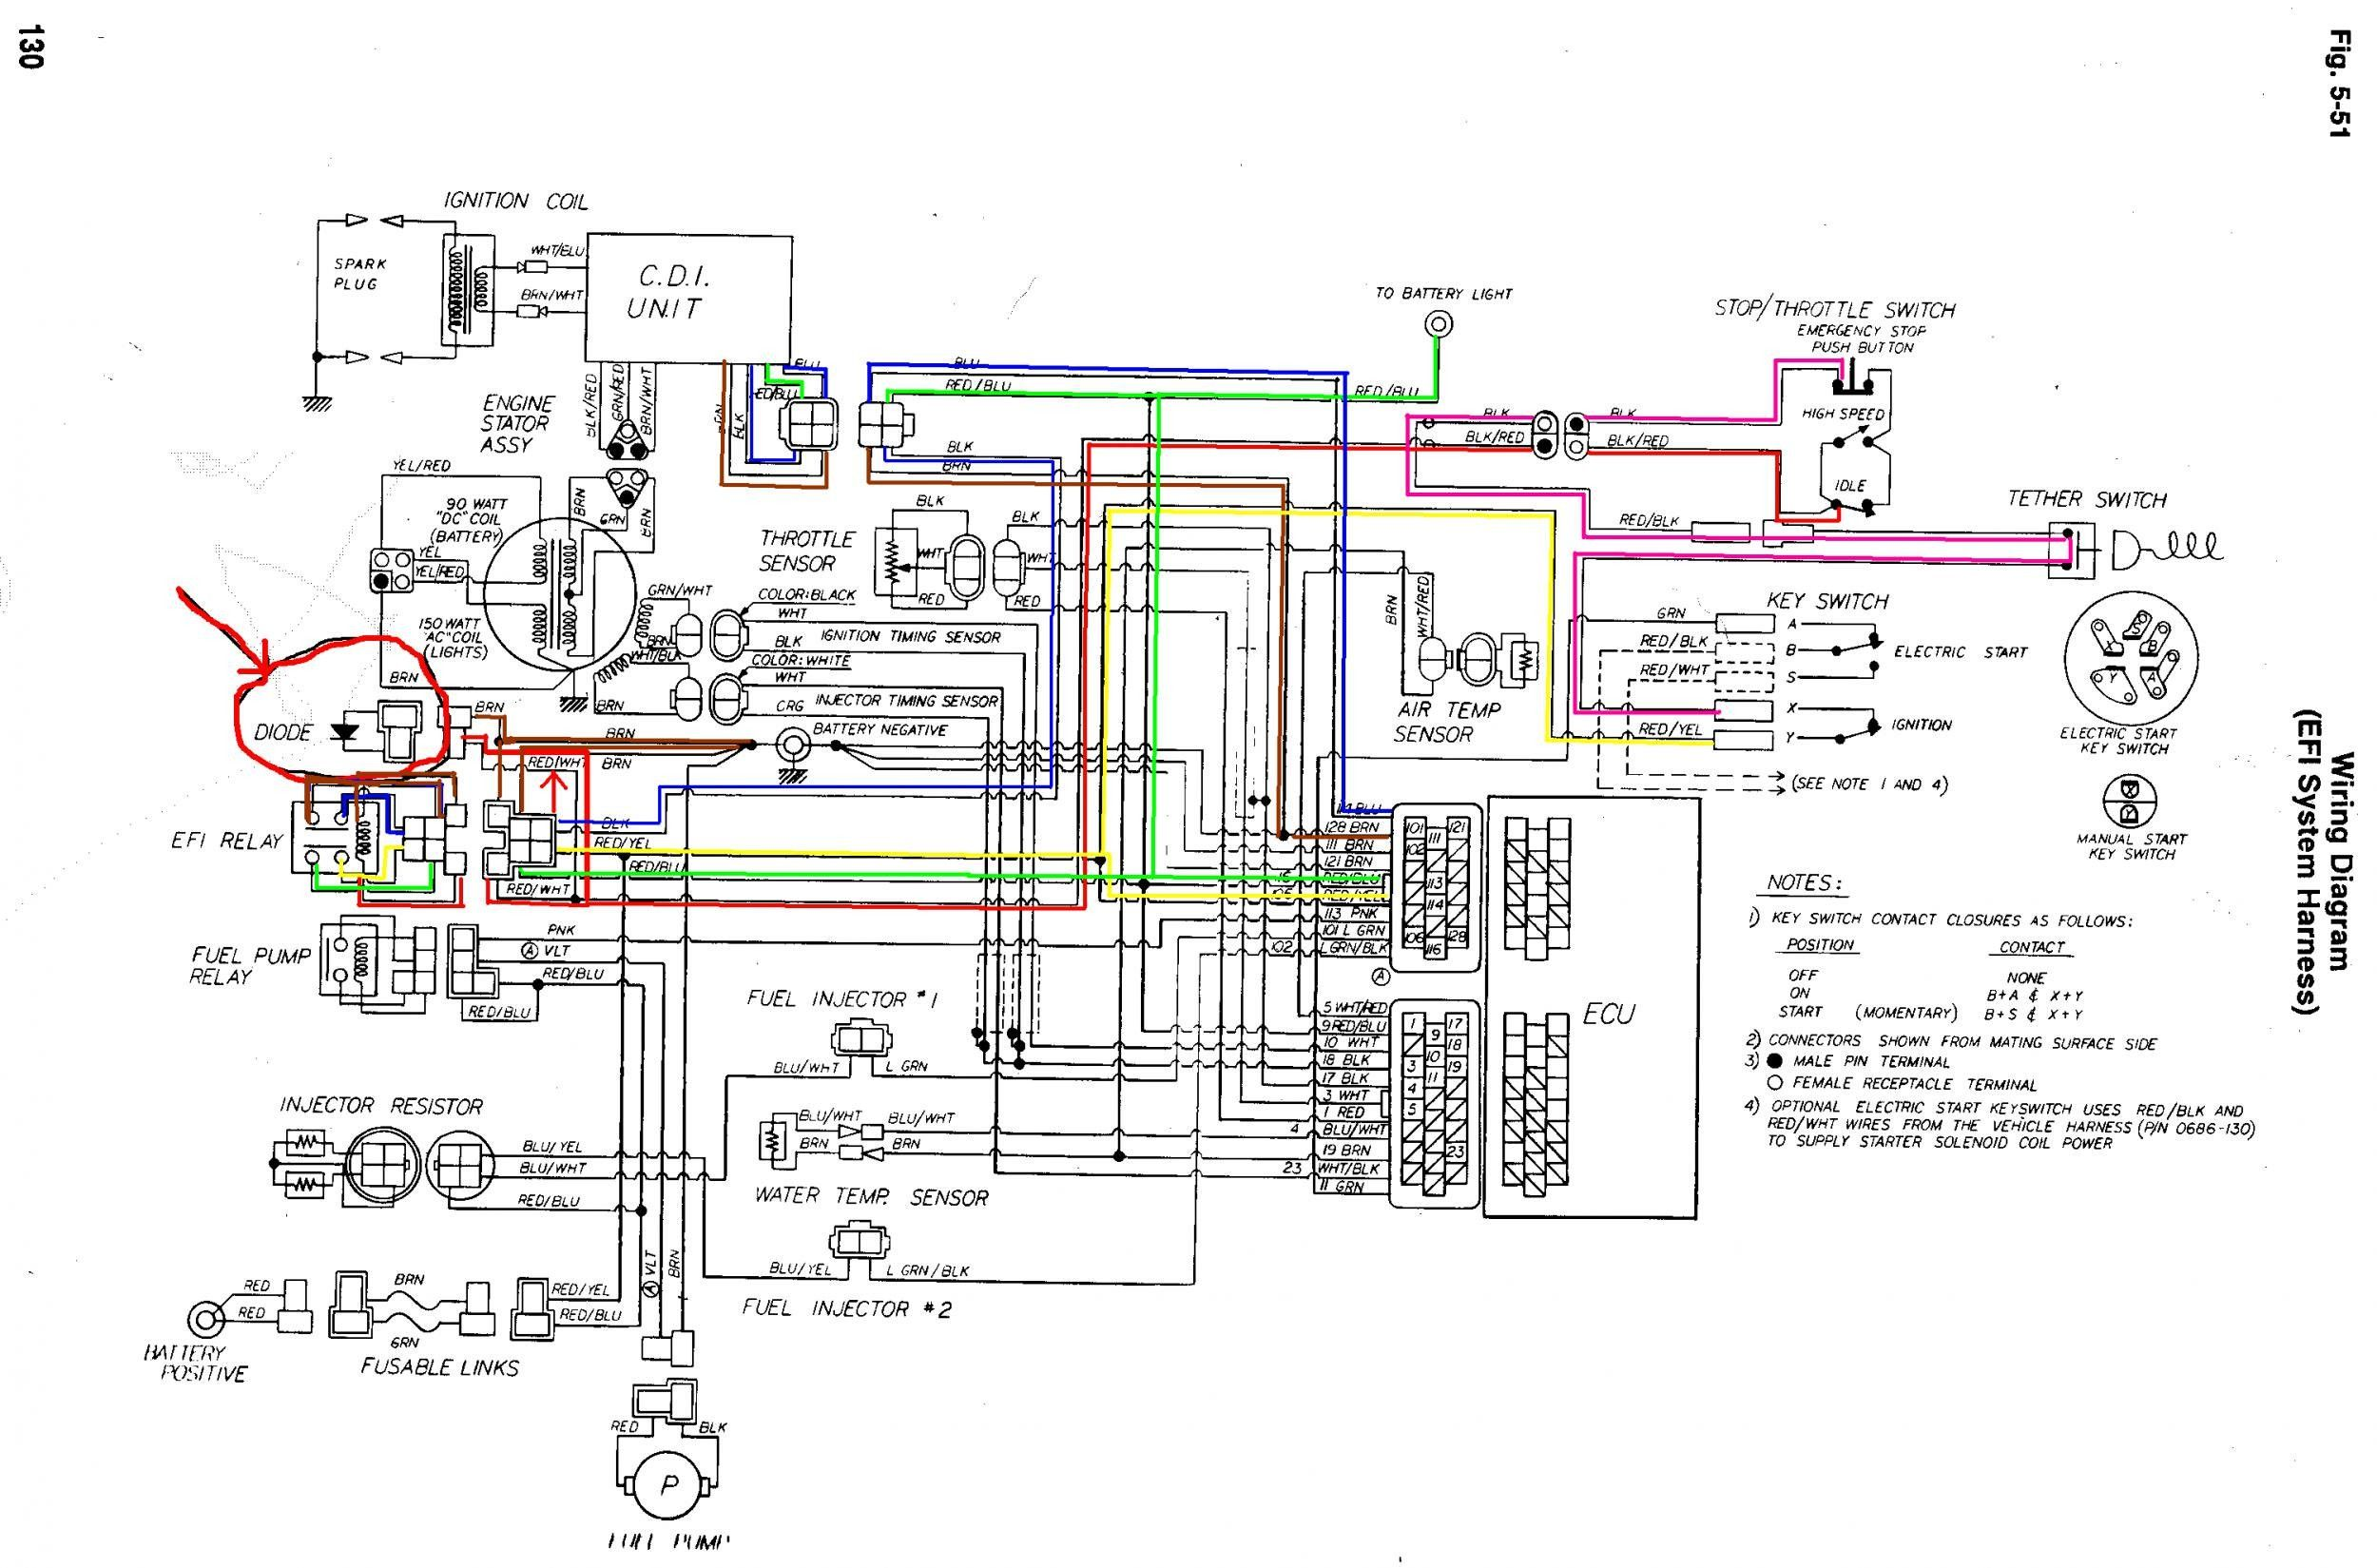 Fresh Wiring Diagram Suzuki Quadrunner Diagrams Digramssample Diagramimages Wiringdiagramsample Wiringdiagram Diagram Ceiling Fan Wiring Wire